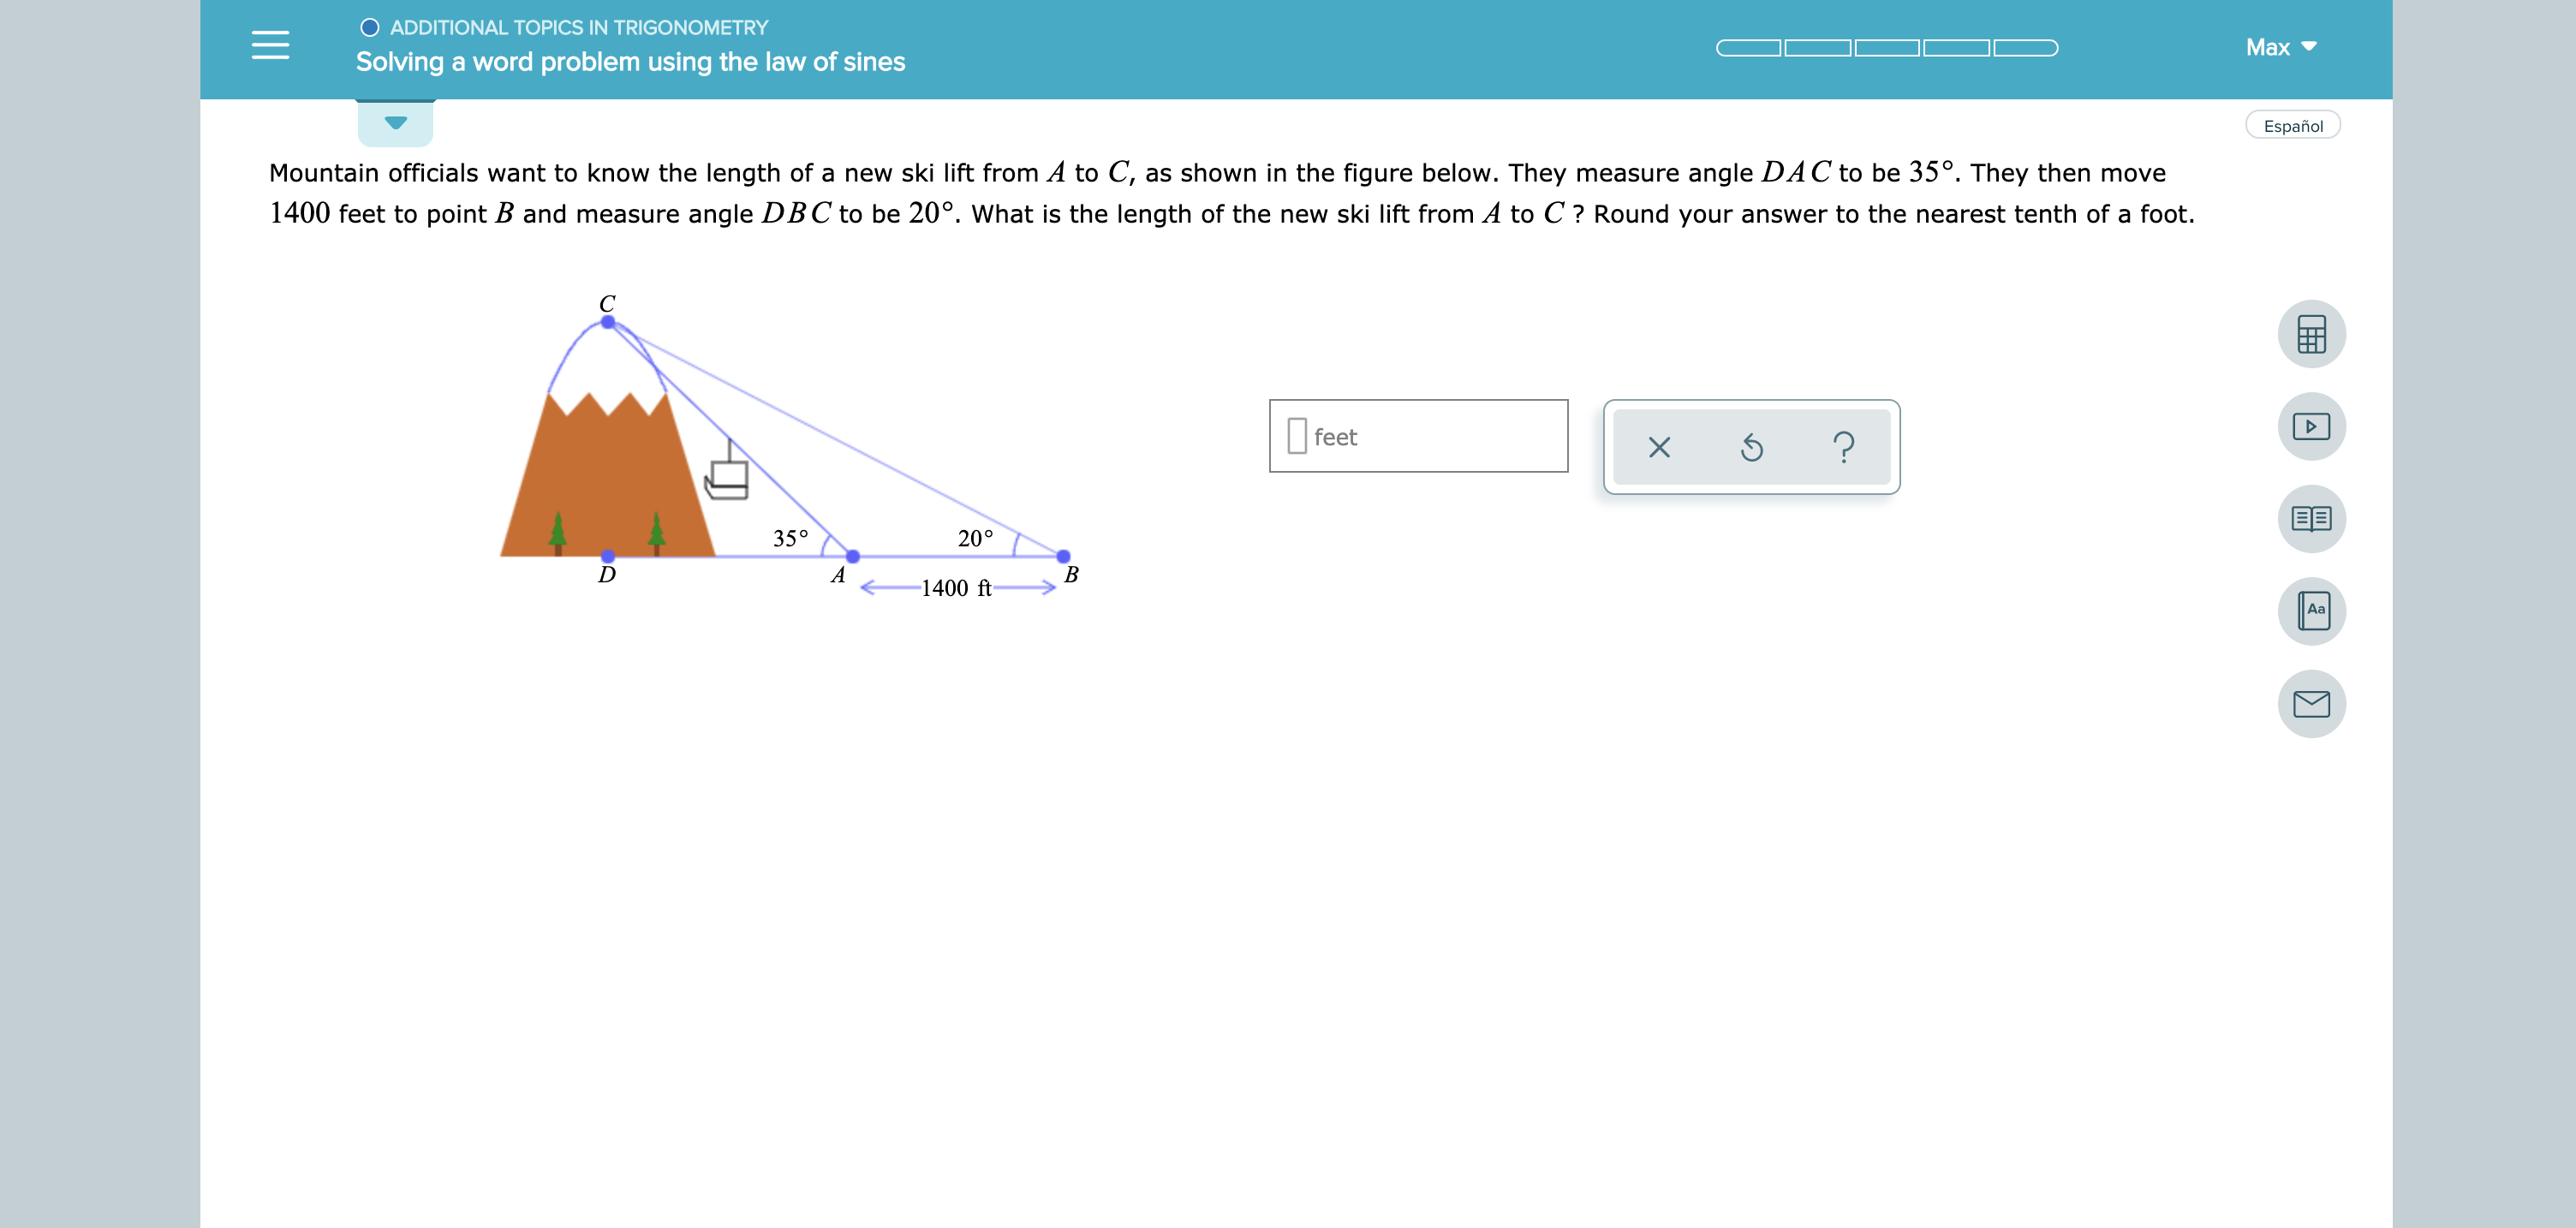 ADDITIONAL TOPICS IN TRIGONOMETRY Мах Solving a word problem using the law of sines Español Mountain officials want to know the length of a new ski lift from A to C, as shown in the figure below. They measure angle DAC to be 35°. They then move 1400 feet to point B and measure angle DBC to be 20°. What is the length of the new ski lift from A to C? Round your answer to the nearest tenth of a foot feet ? 35° 20° A В 1400 ft Aa